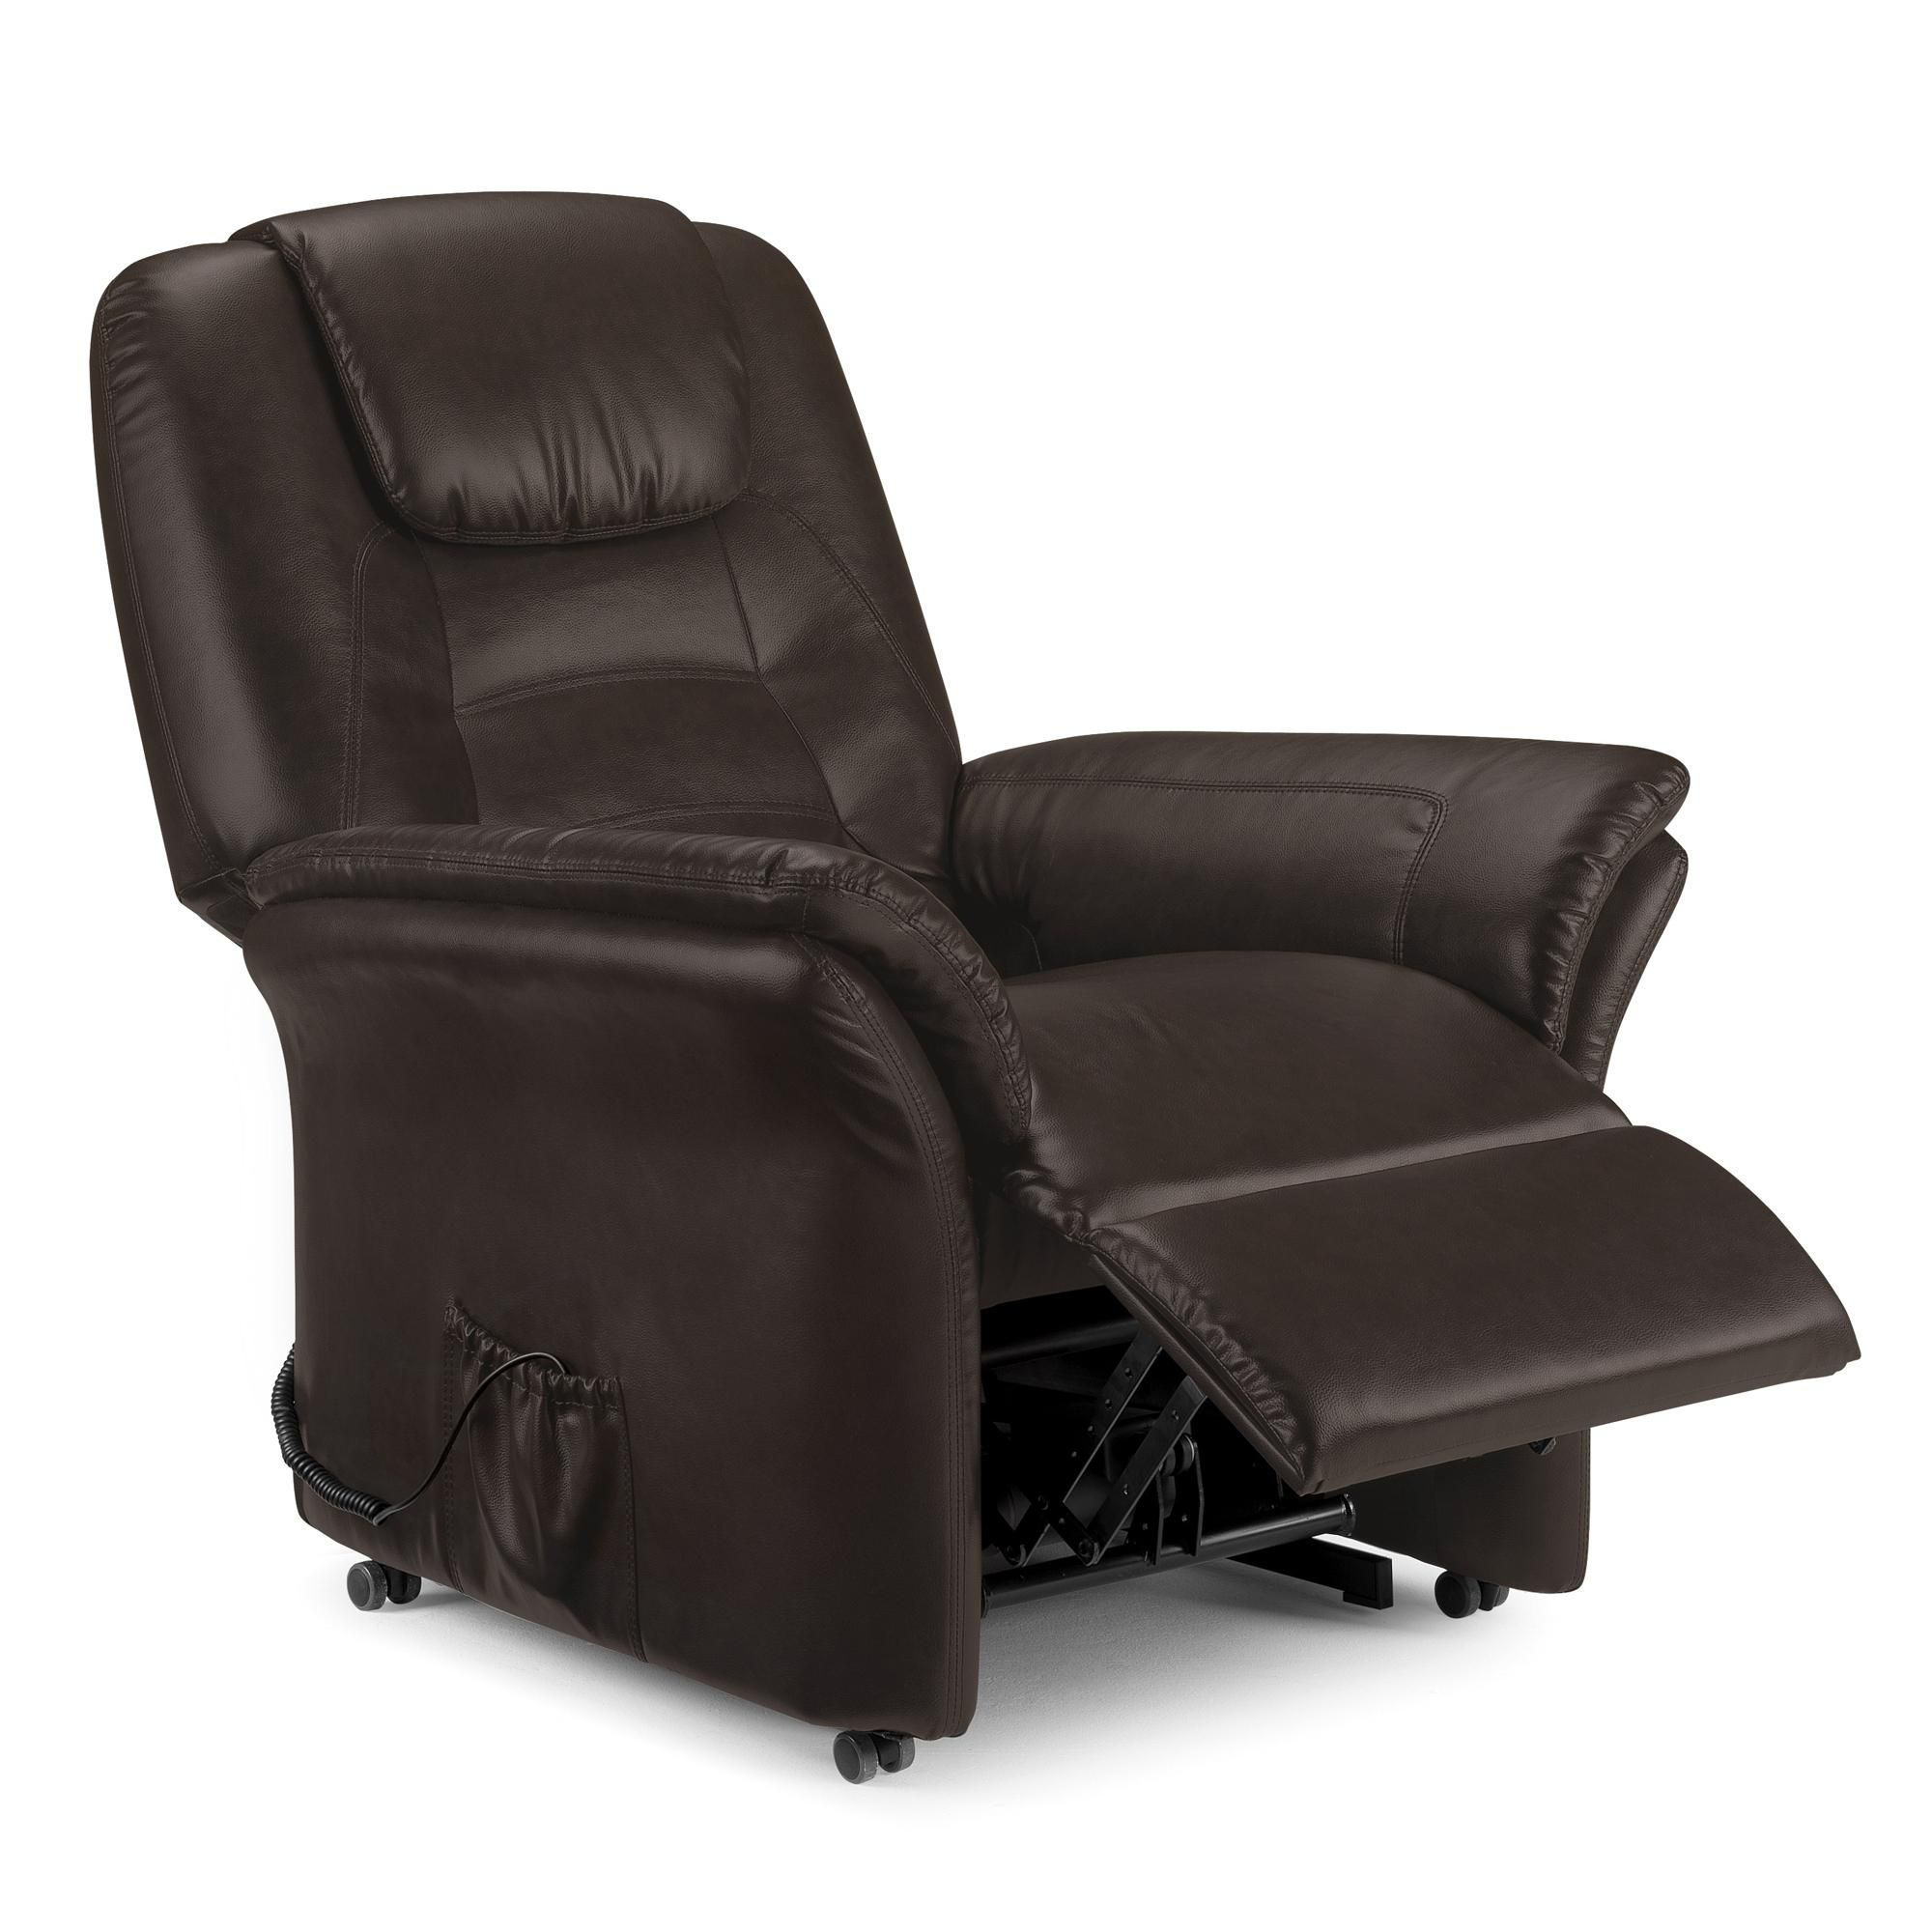 Riva Riser Recliner Leather Armchair Brown In 2020 Leather Recliner Chair Recliner